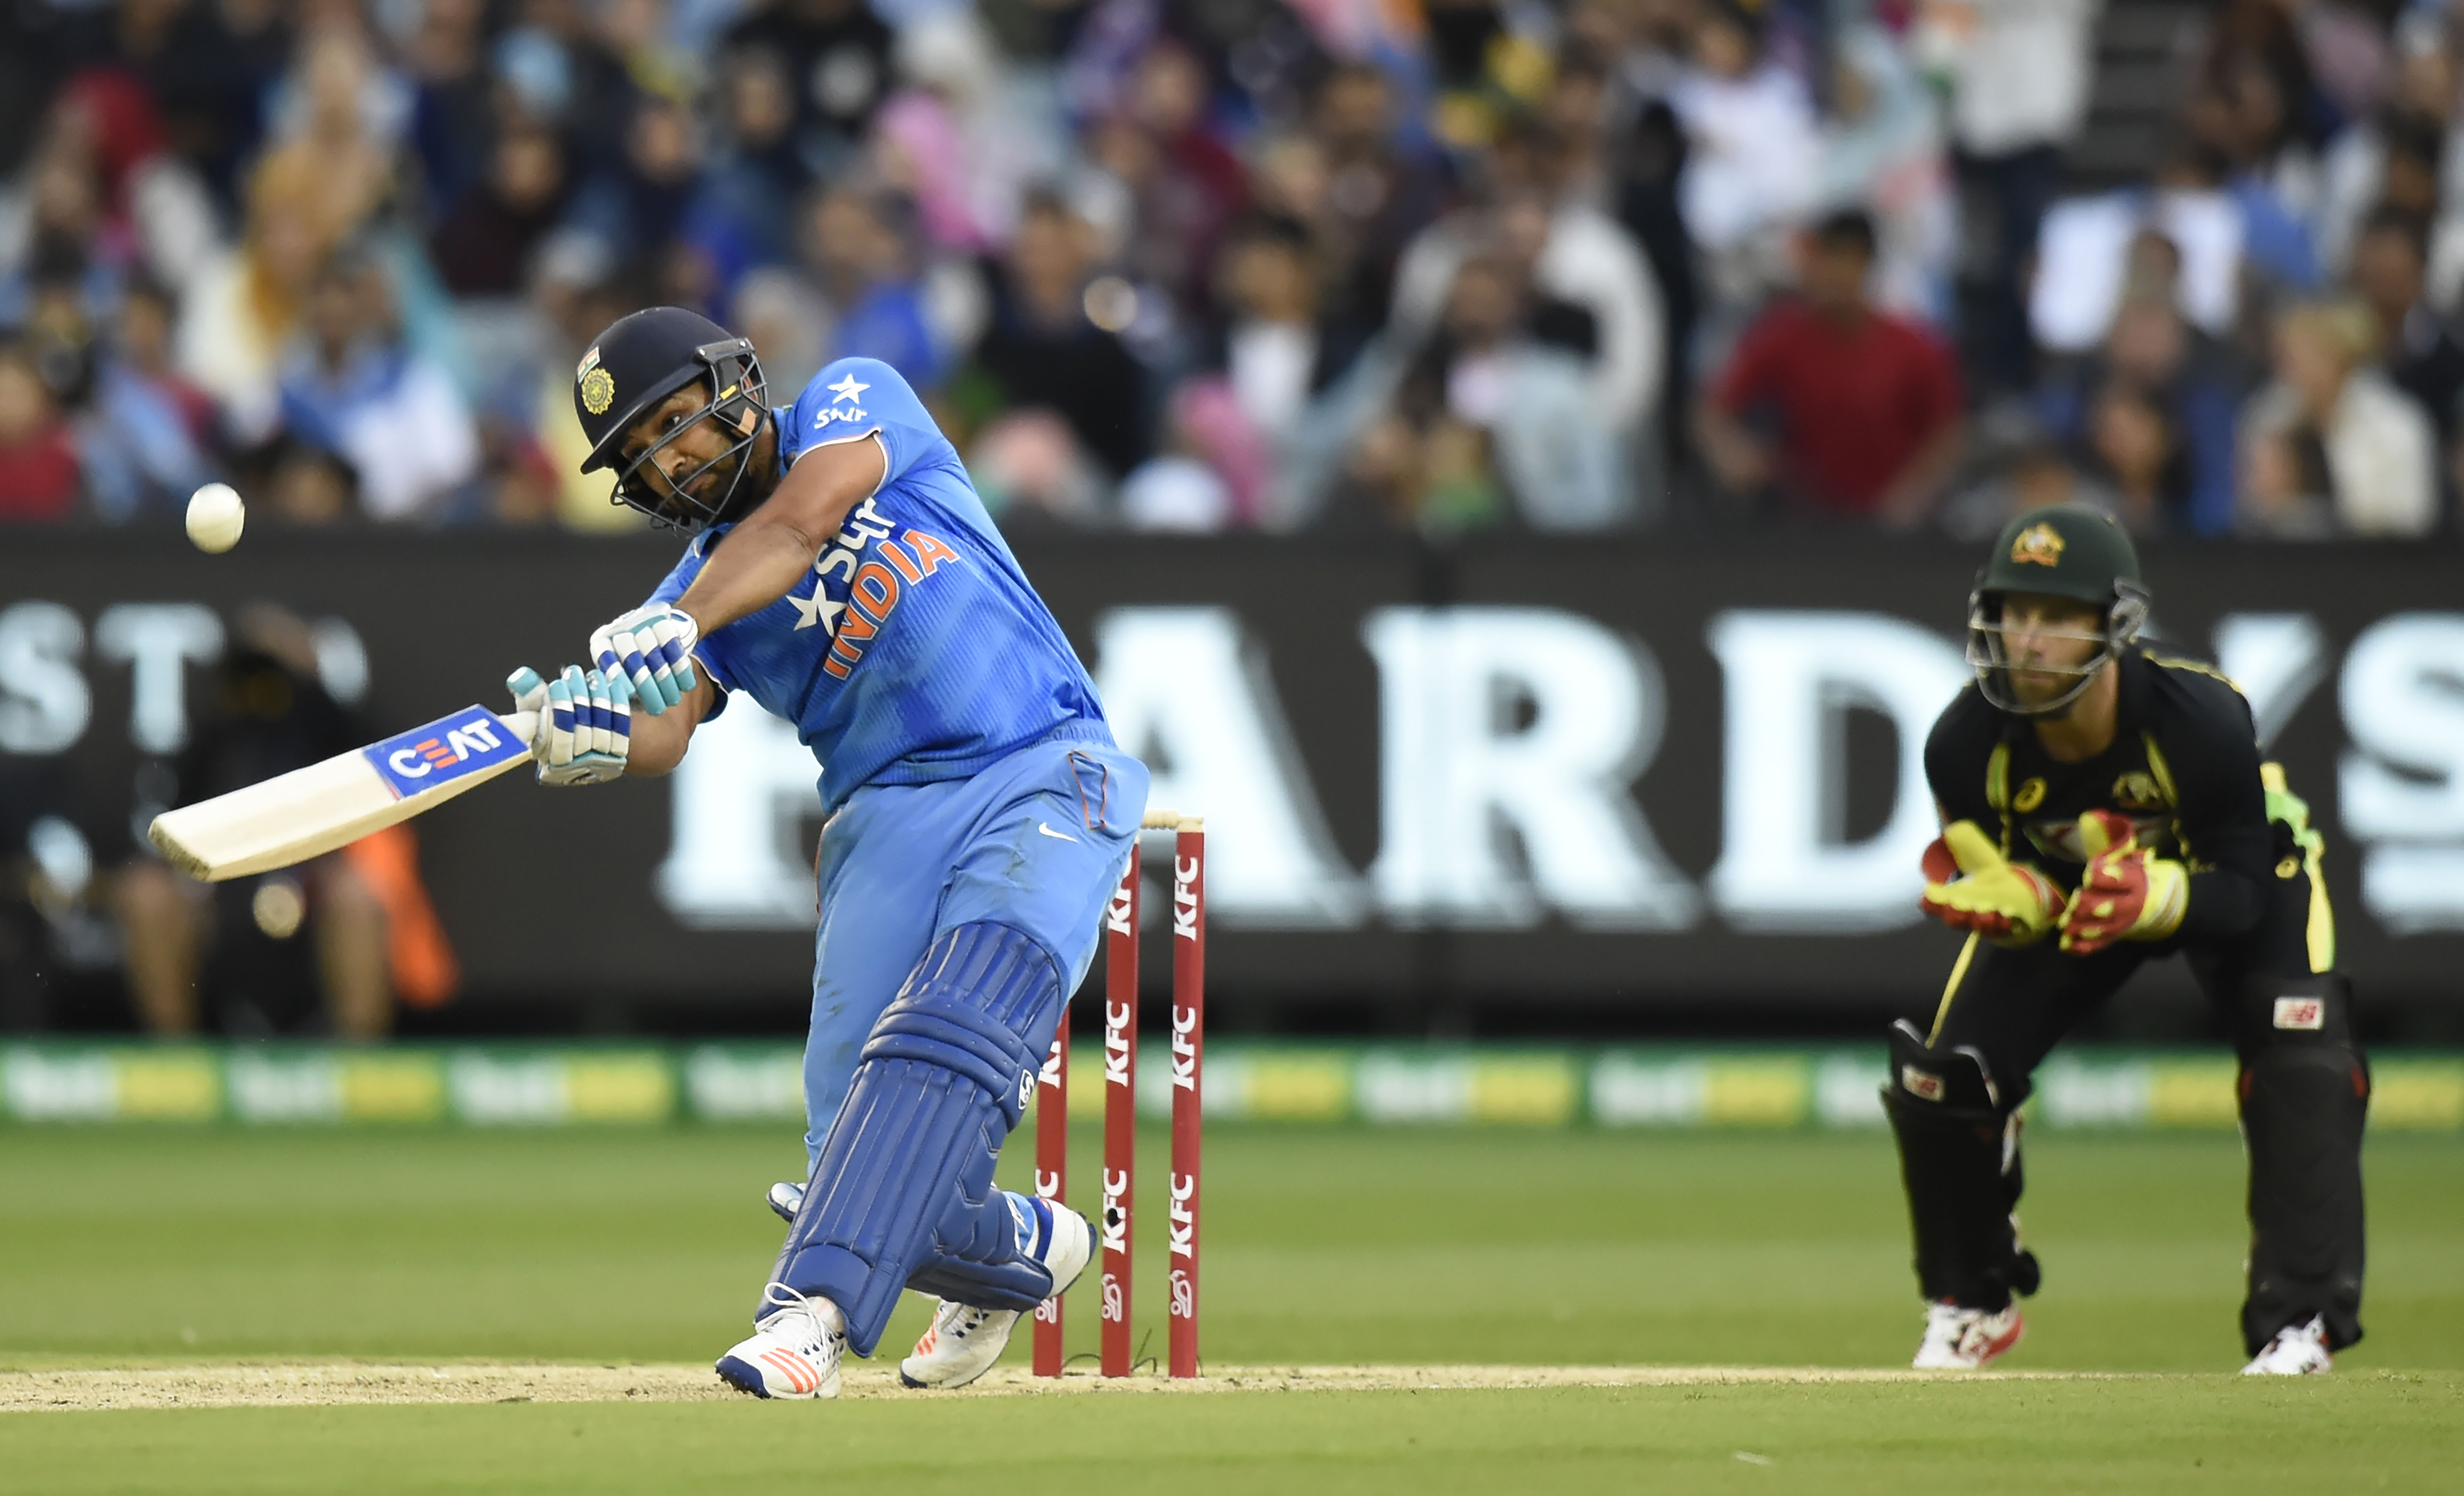 India blanked Australia 3-0 in a T20I series to end their nightmarish start to the year (Image credit: AFP)